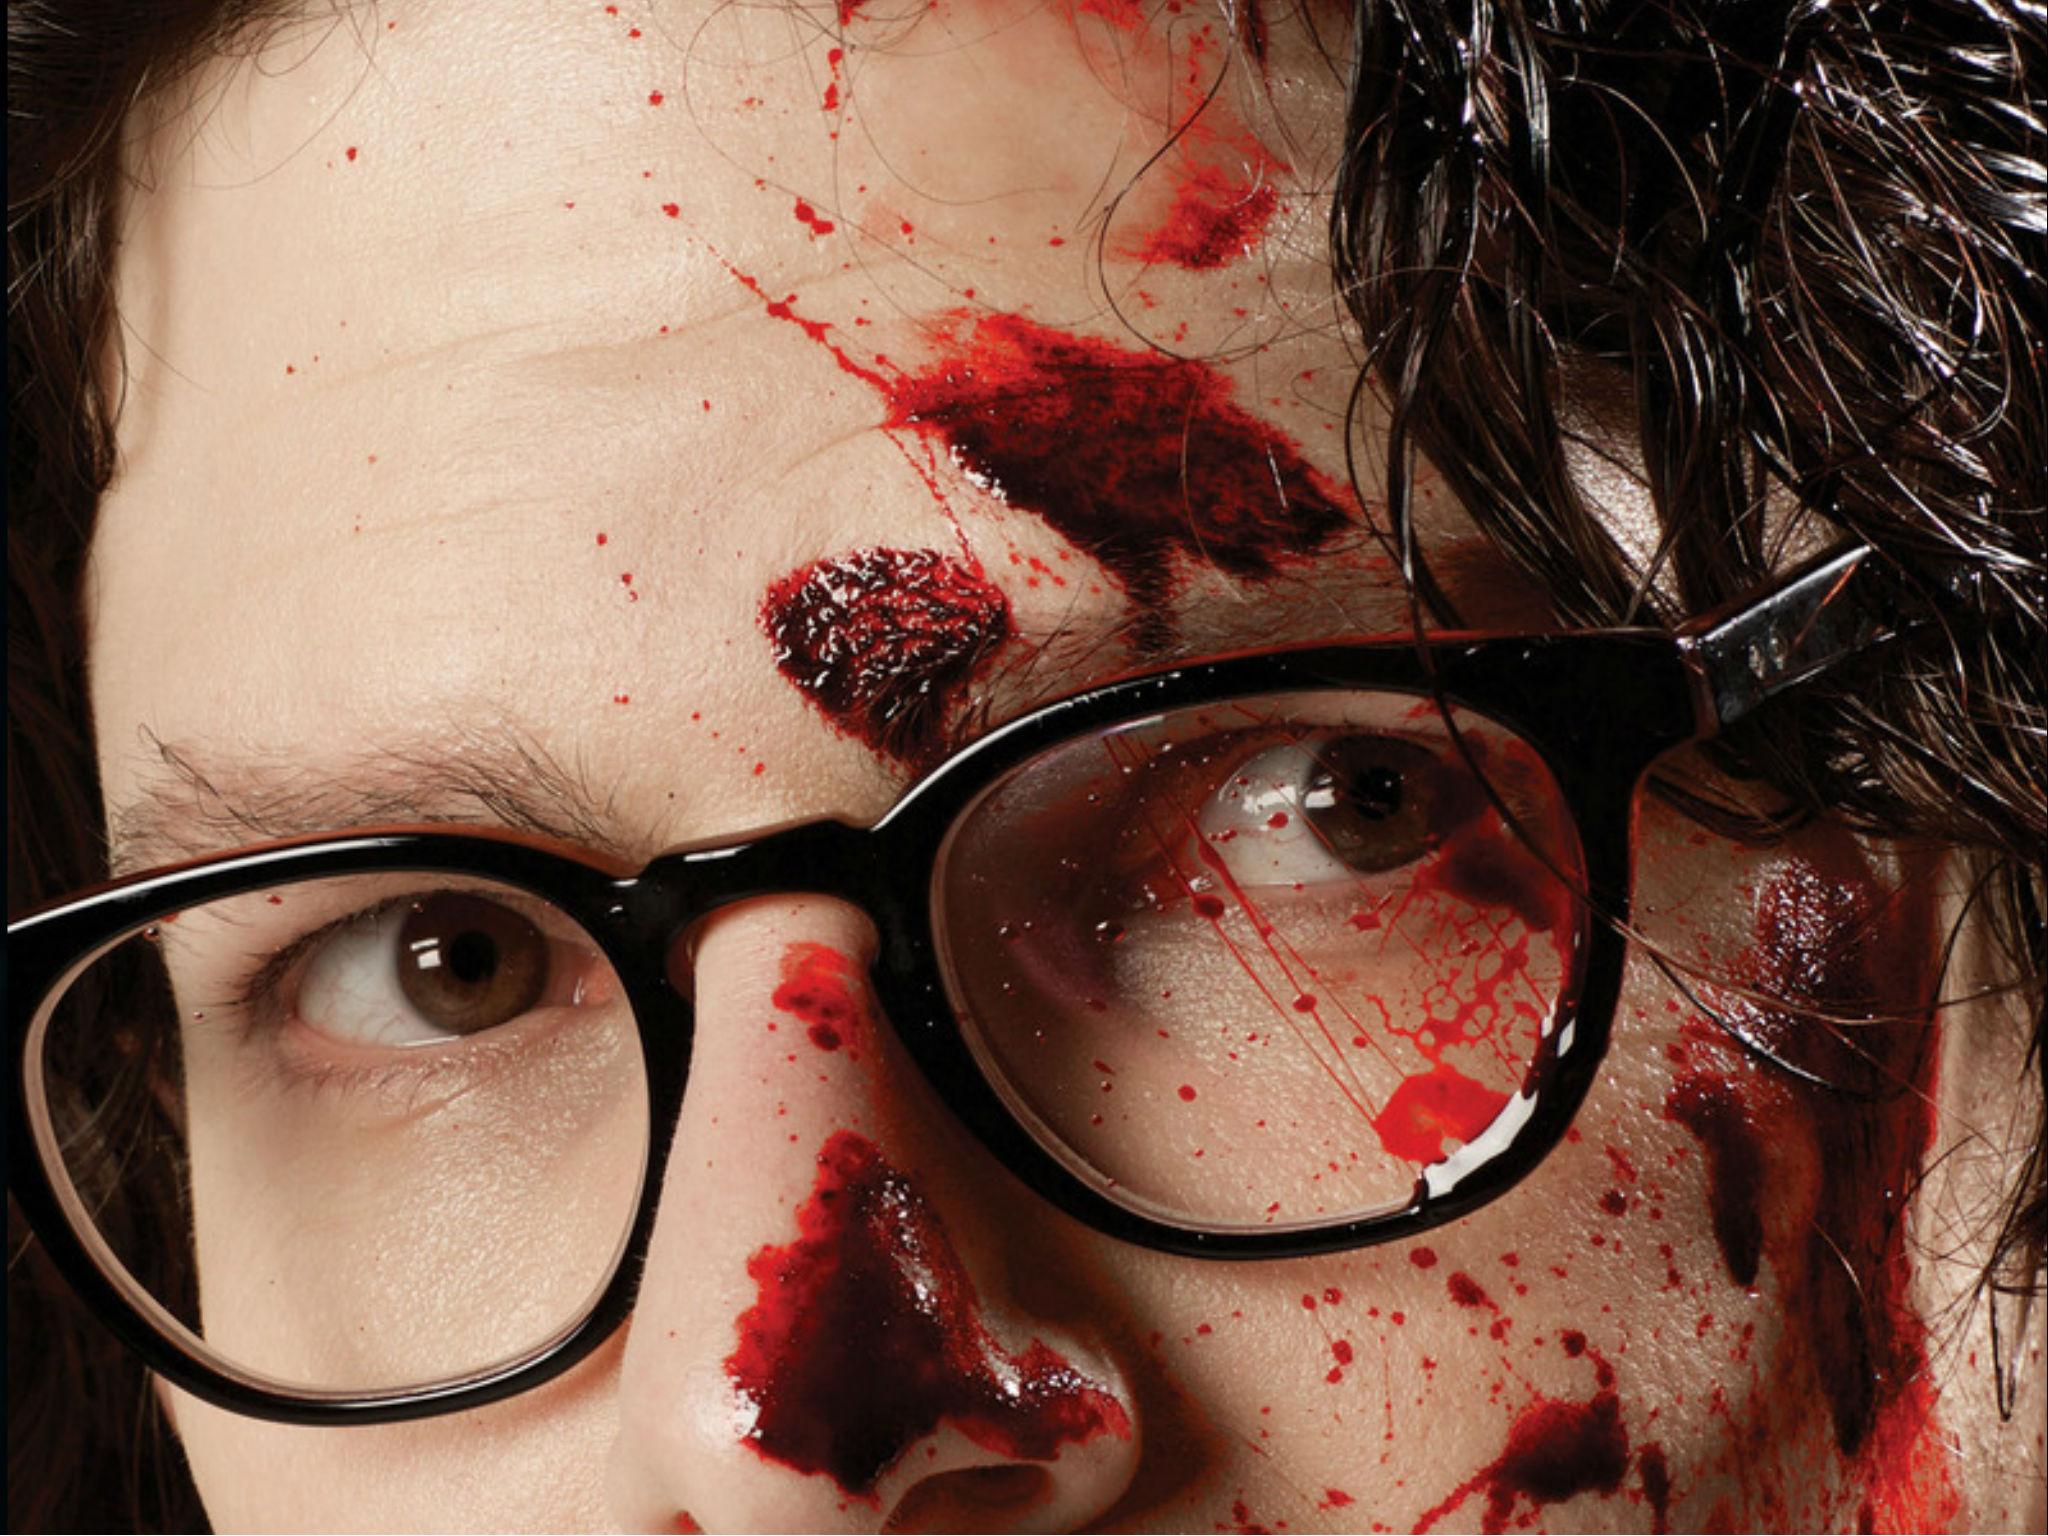 Carnage, review: Simon Amstell has made the world's first vegan comedy that's actually funny